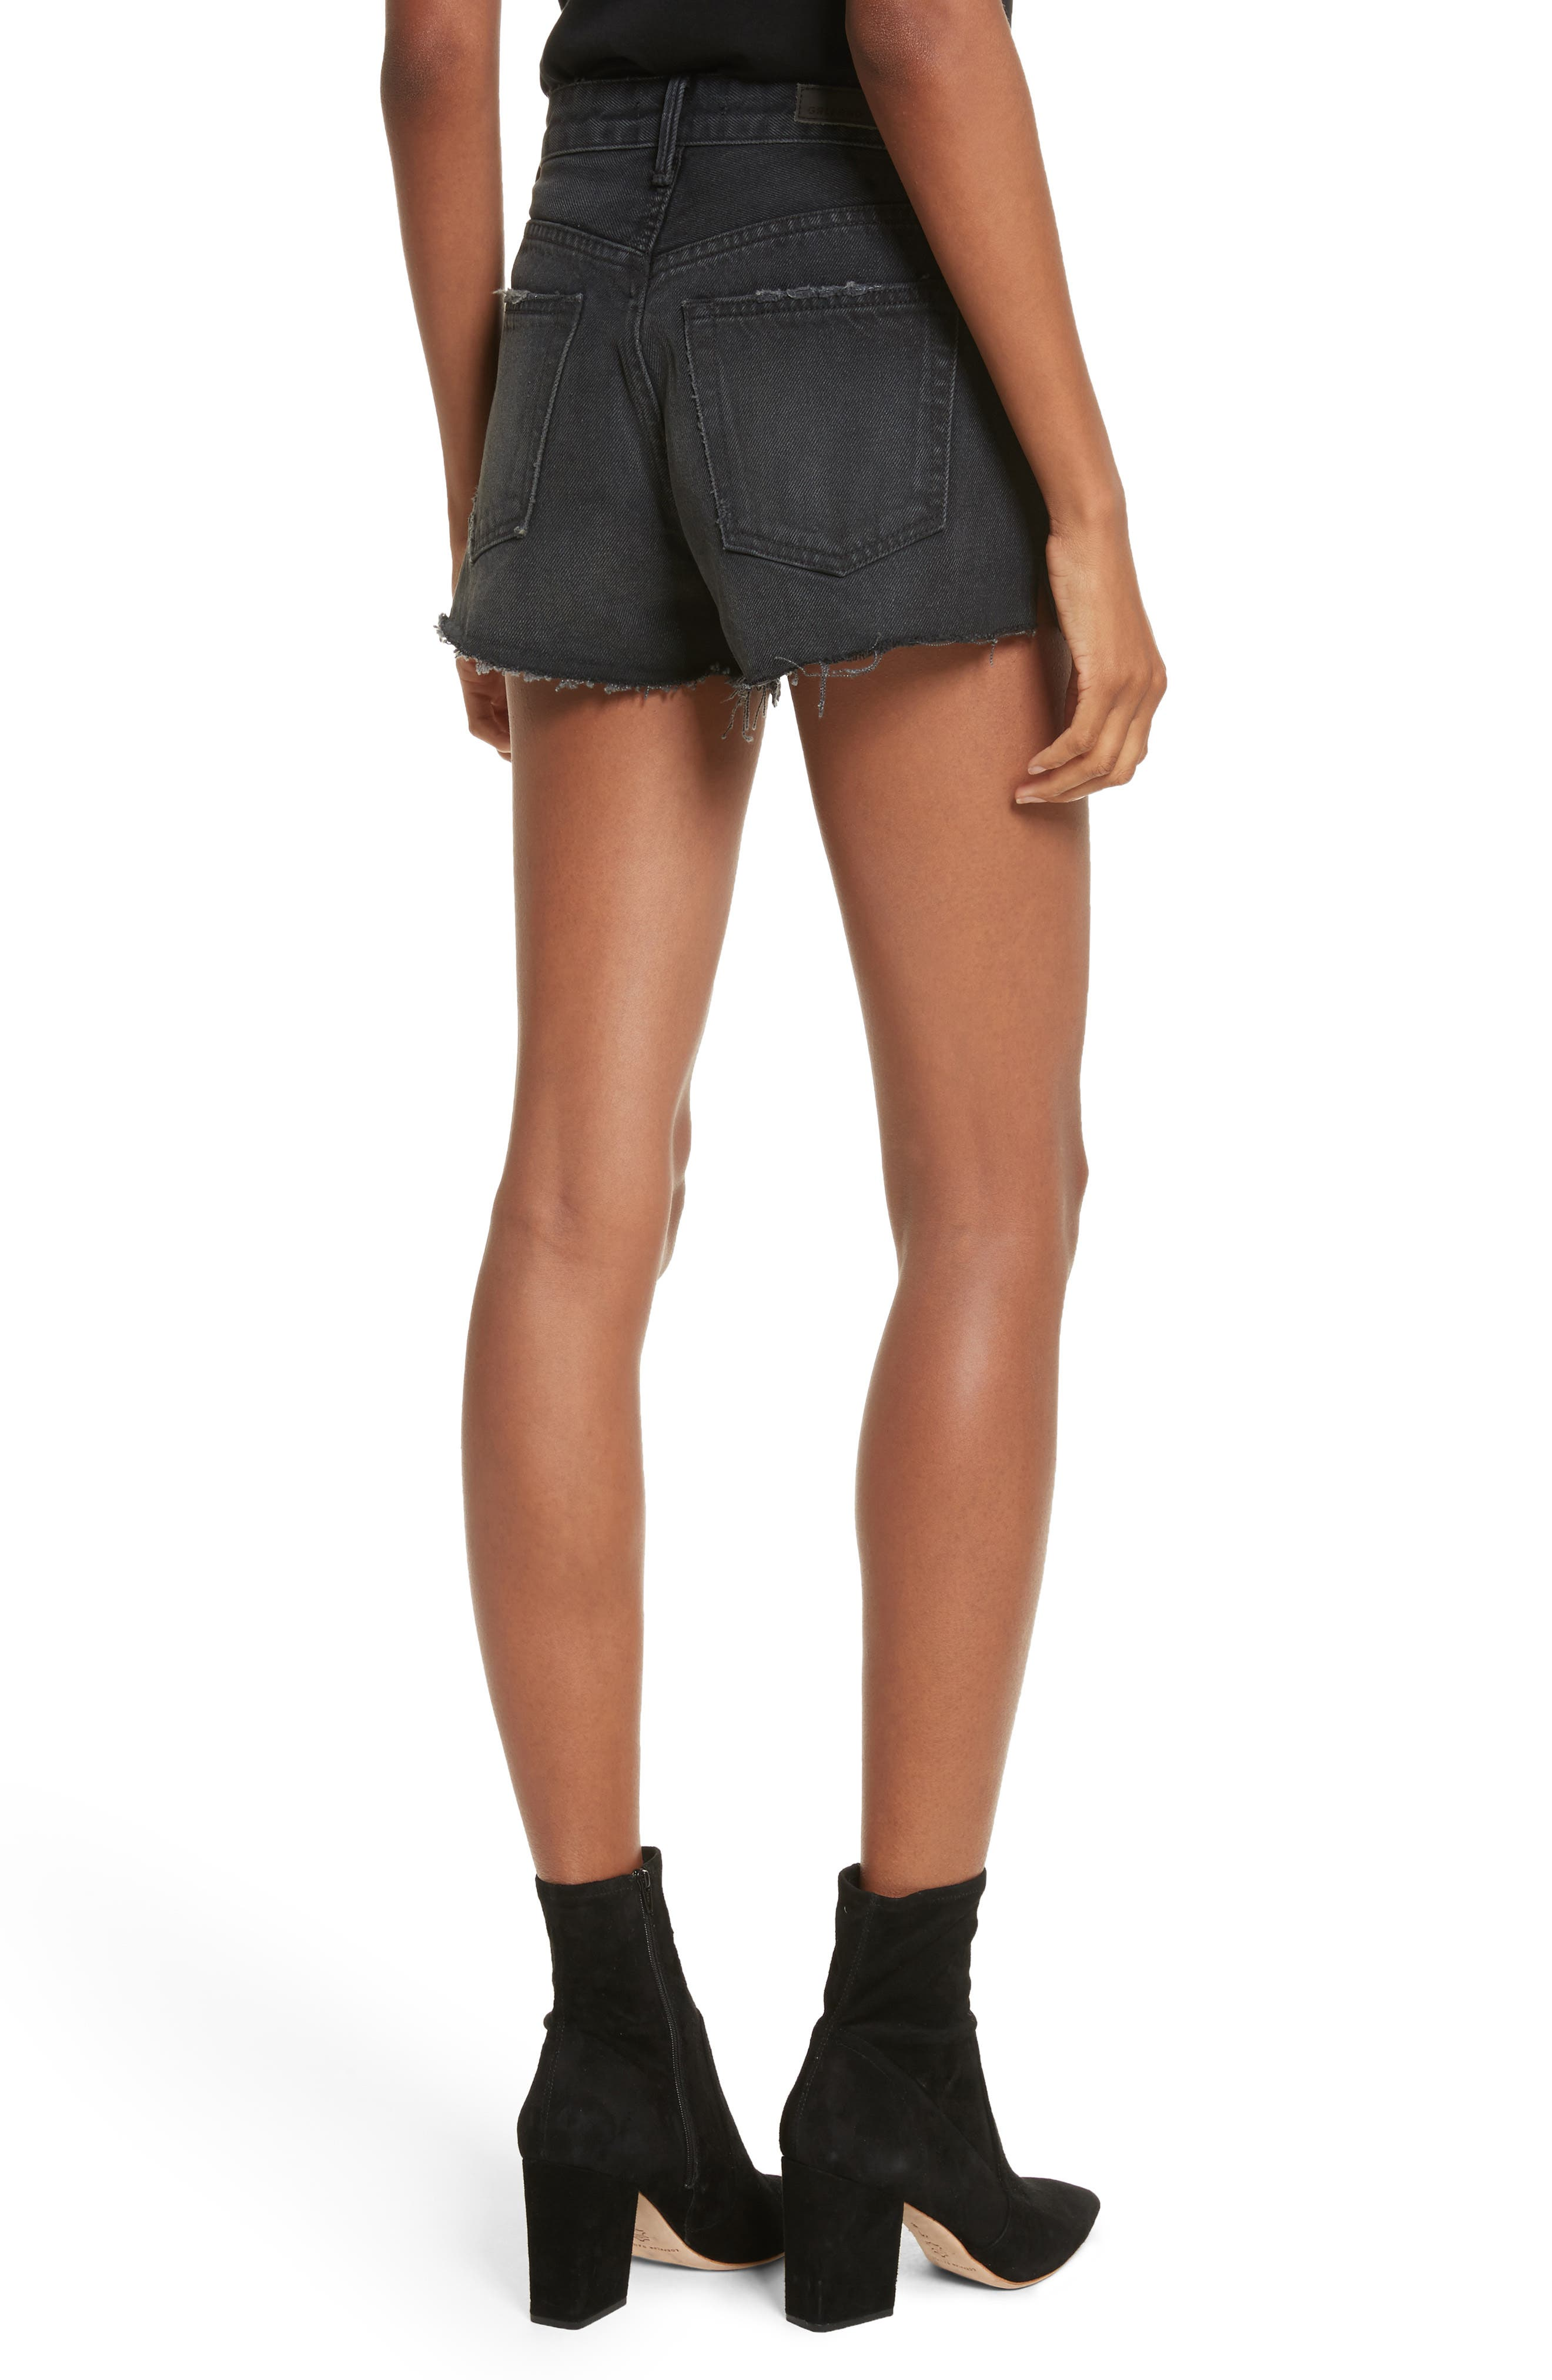 Cindy Rigid High Waist Denim Shorts,                             Alternate thumbnail 2, color,                             007